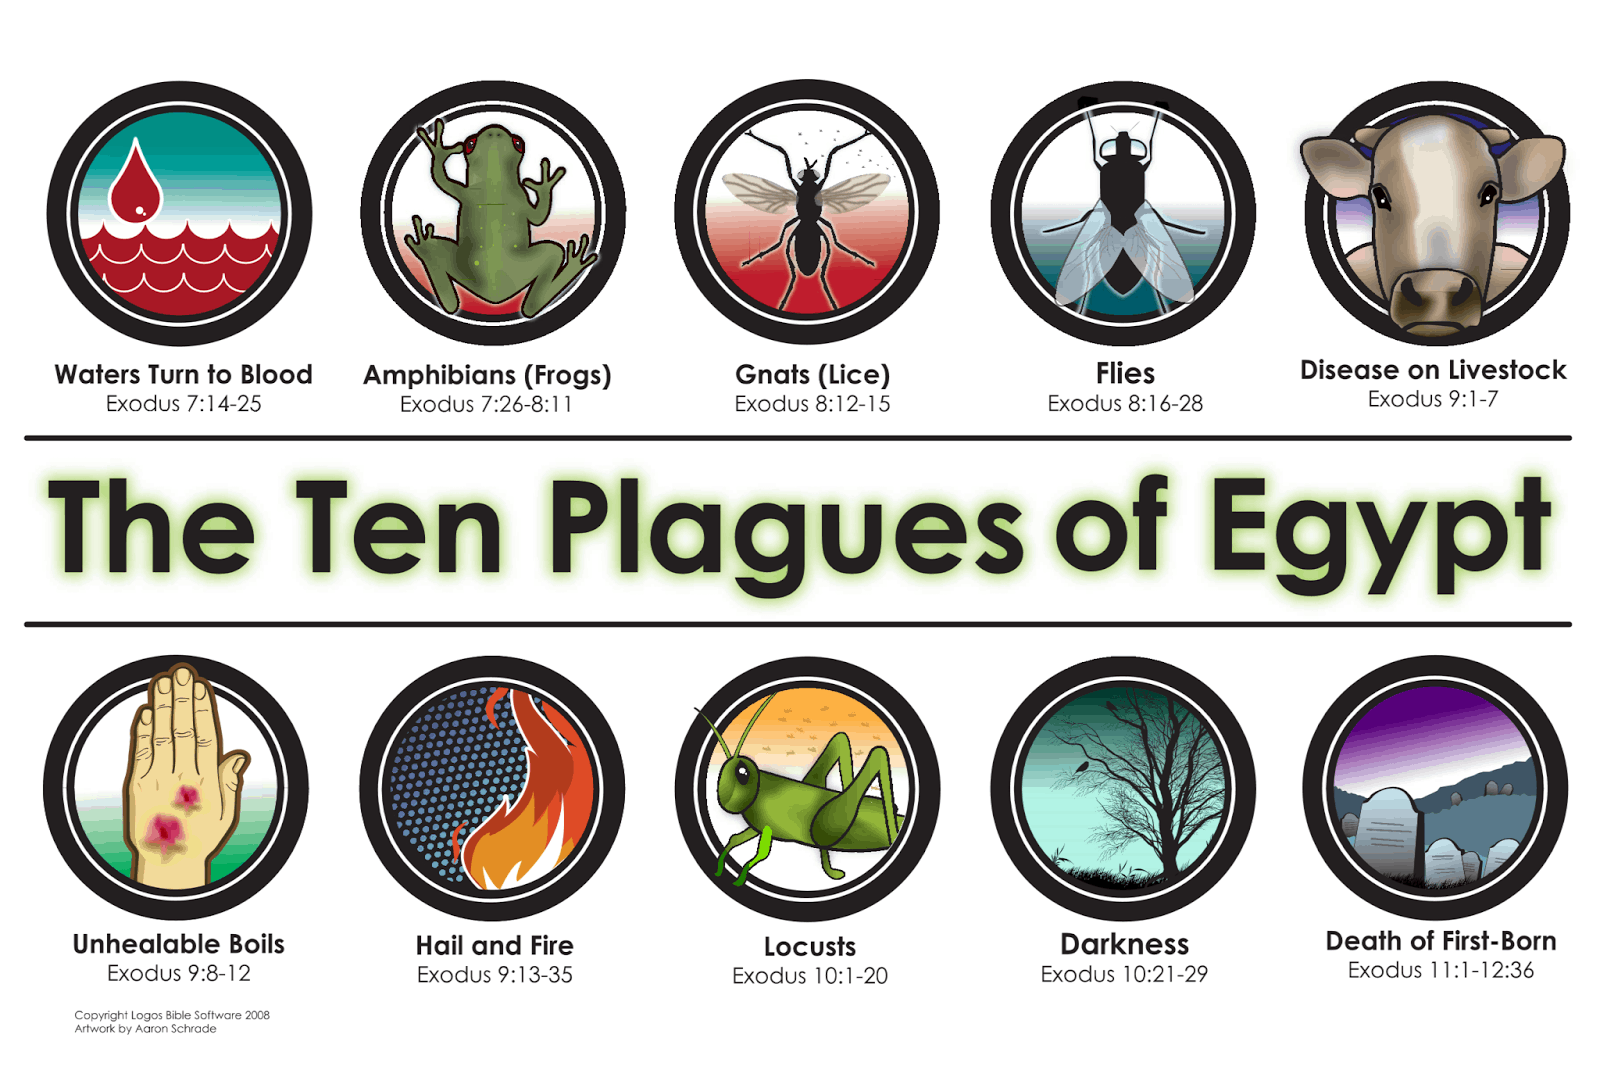 Ten Plagues of Egypt,Egypt Plagues,10 Plagues,7 Angles,7 last Plagues,7 Final Plagues,Curses,7 Golden Bowls,Day of Wrath,Day of Vengeance,Anger,7 Vials of Wrath,7 Bowls of Wrath,Book of Revelation,Revelation 15,Revelation 16,Revelation Chapter 15,Revelation Chapter 16,Seven Vials of Wrath,7 Vials,7 Bowls,Seven Bowls,wrath,Picture Gallery,Book of Revelation,First Vial,Second Vial,Third Vial,Fifth Vial,Sixth Vial,Seventh Vial,Chapter 15,Chapter 16,Chapter 19,Armageddon,7 Bowls of Wrath,First Bowl,Earth,Land,Second Bowl,Sea,Third Bowl,Rivers,Springs,Water,Blood,Fourth Bowl,Sun,Scorch,Fire,Fifth Bowl,Throne of Beast,Darkness,Sixth Bowl,Euphrates,Armageddon,Seventh Bowl,Air,it is done,it is finished